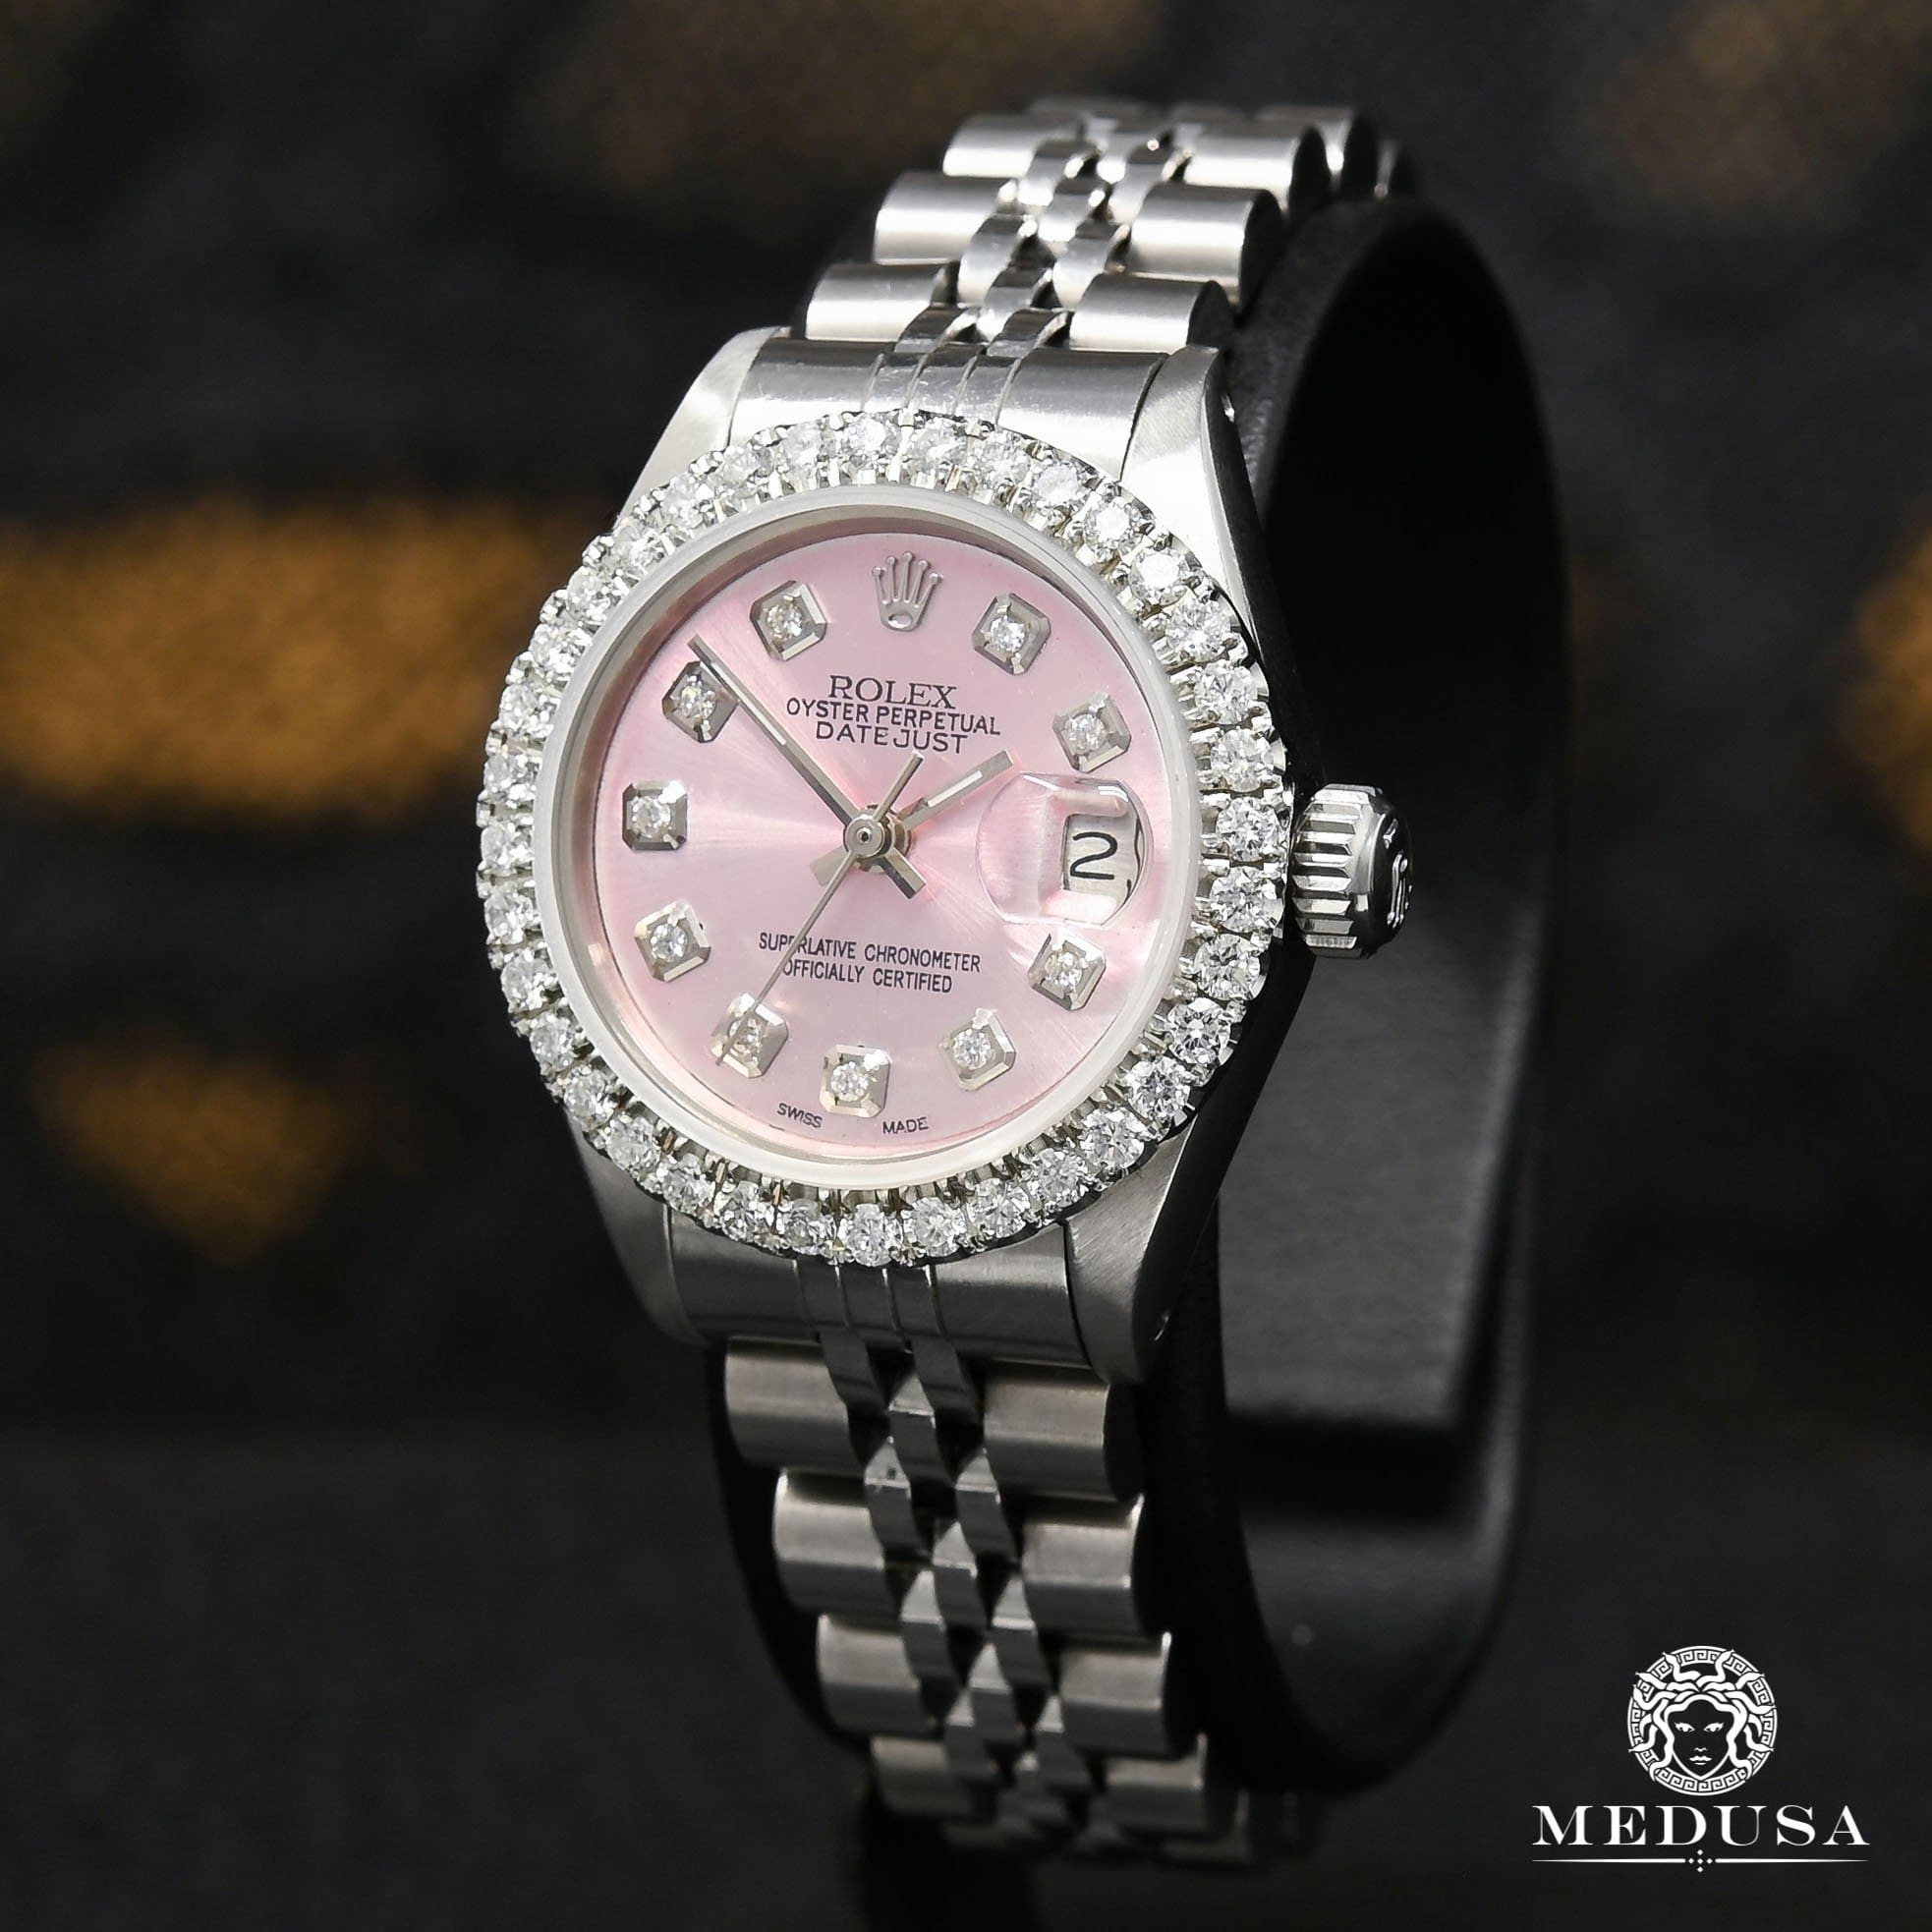 Rolex watch | Rolex Datejust 26mm Woman Watch - Pink Stainless Stainless